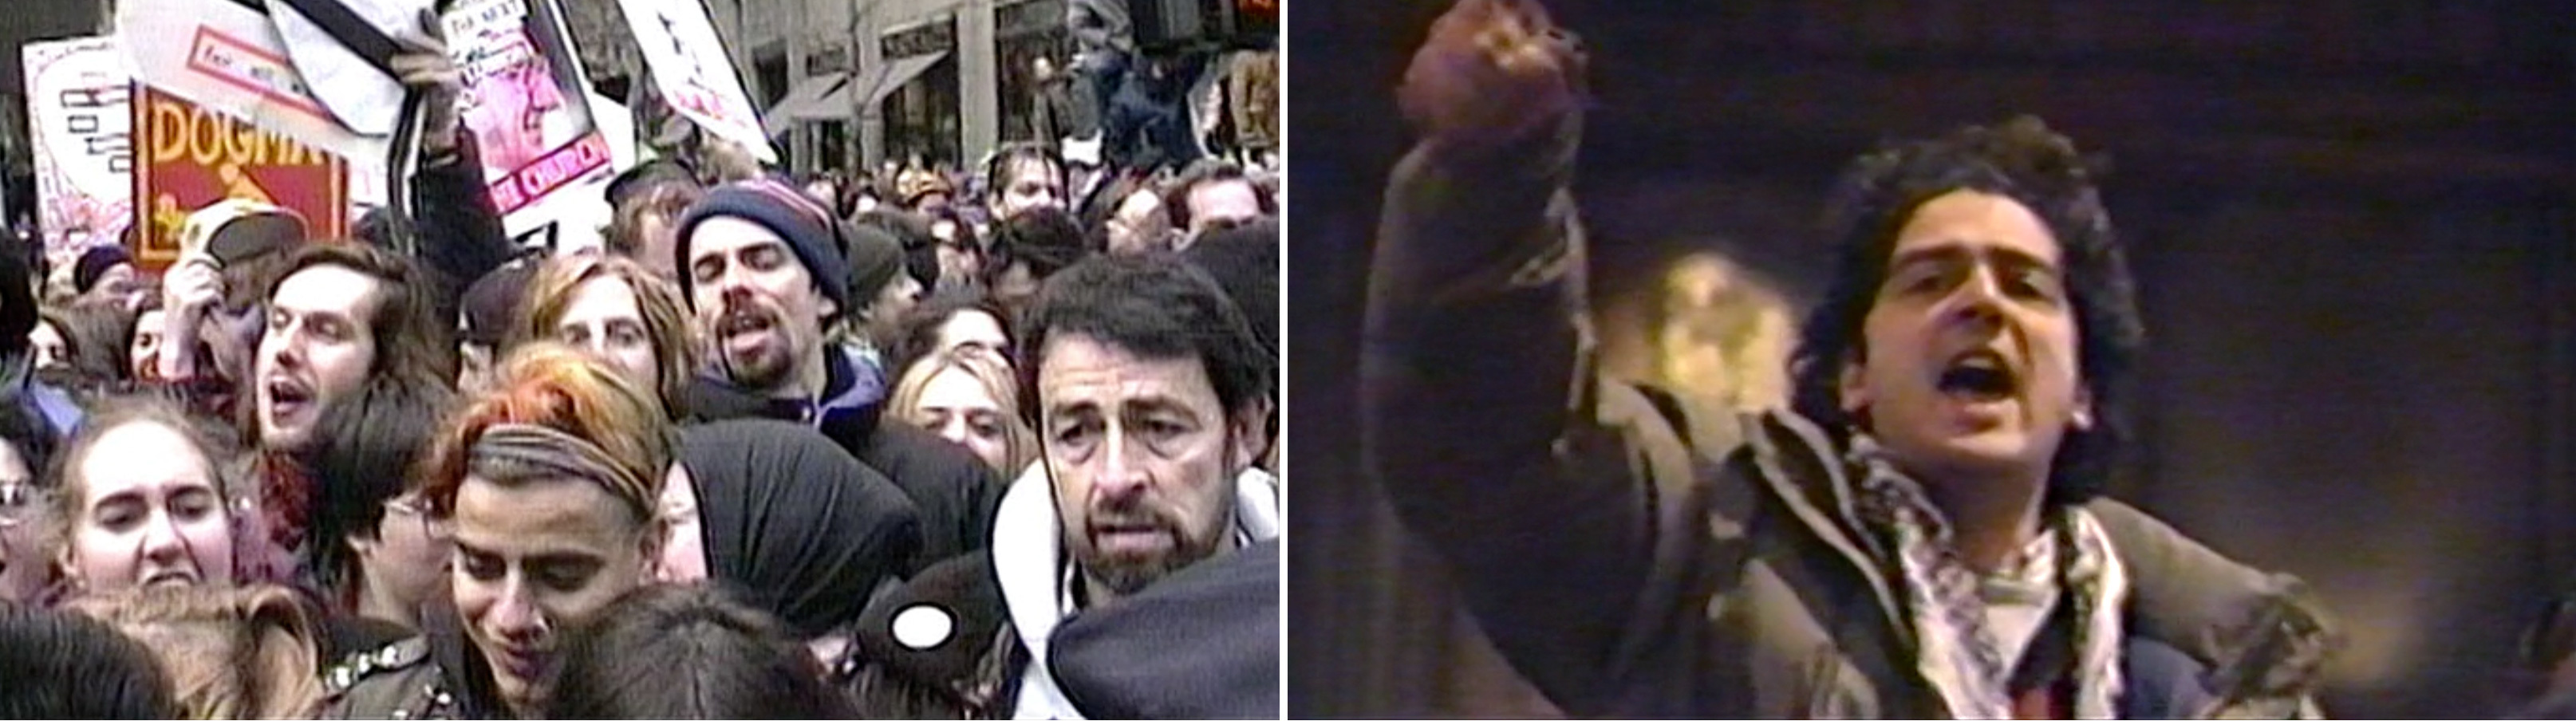 """December 1989: At left, members of ACT UP mount a protest outside St. Patrick's Cathedral in New York. At right, activist Michael Petrelis inside the cathedral shouts """"Stop killing us!"""" in the middle of the service."""